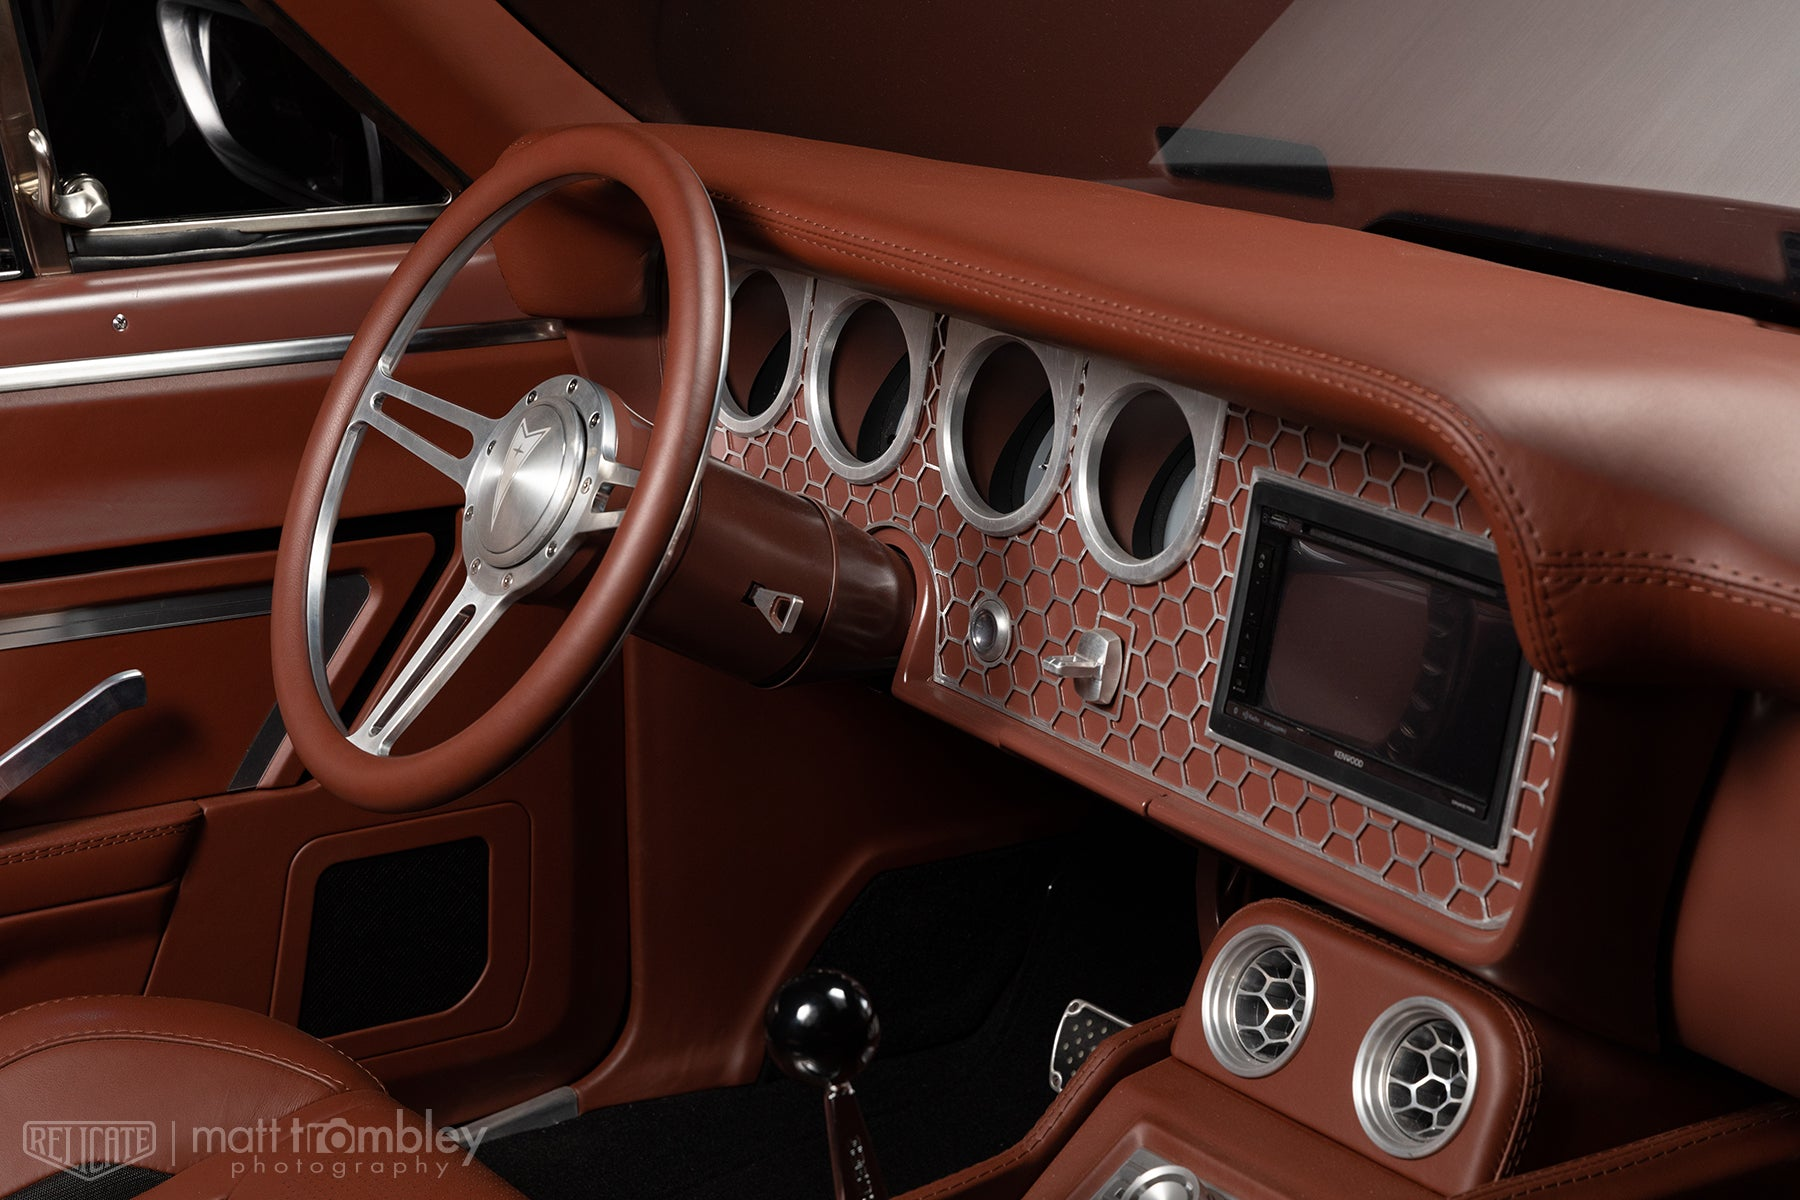 1966 Pontiac Lemans Convertible Relicate Full Grain Millbrook interior Bux Customs Sema 2019 Steering Wheel Dash